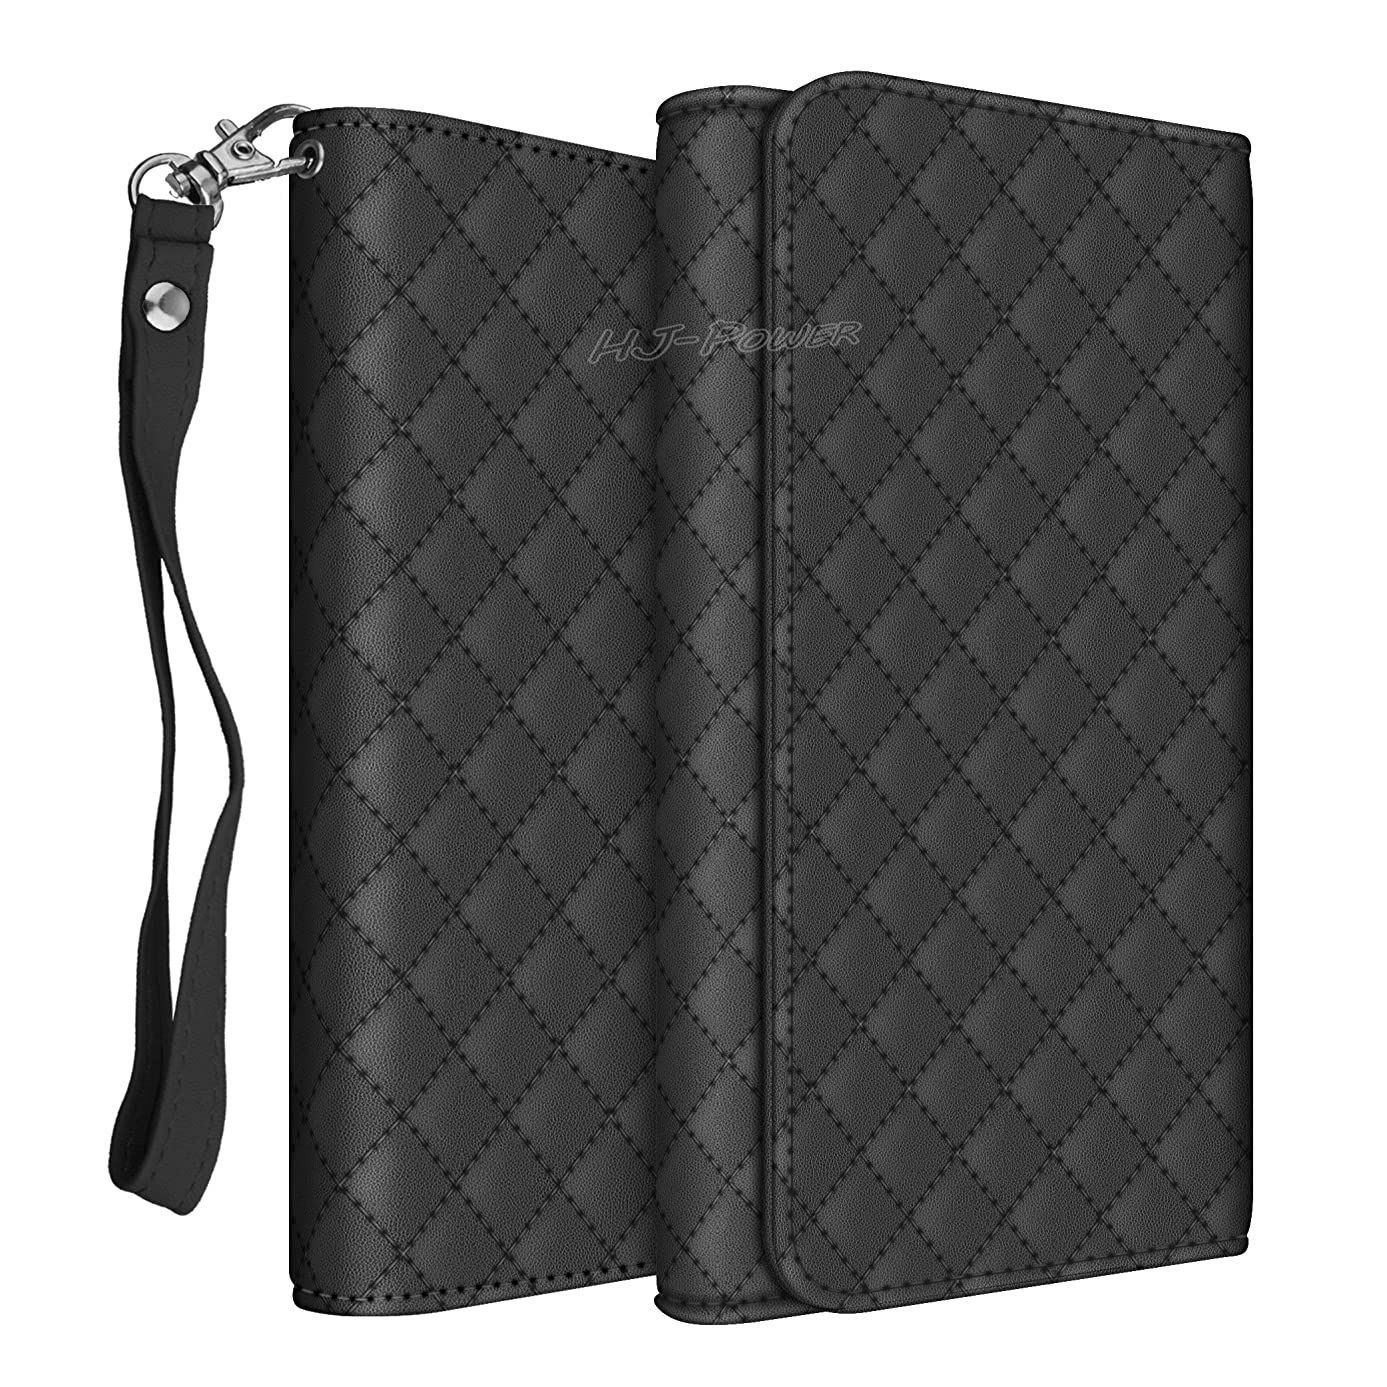 HJ Power[TM] CH5 Smart Phone Universal PU Leather Checker Style Wallet Pouch is Compatible with BLU G9 (Unlocked)- Black